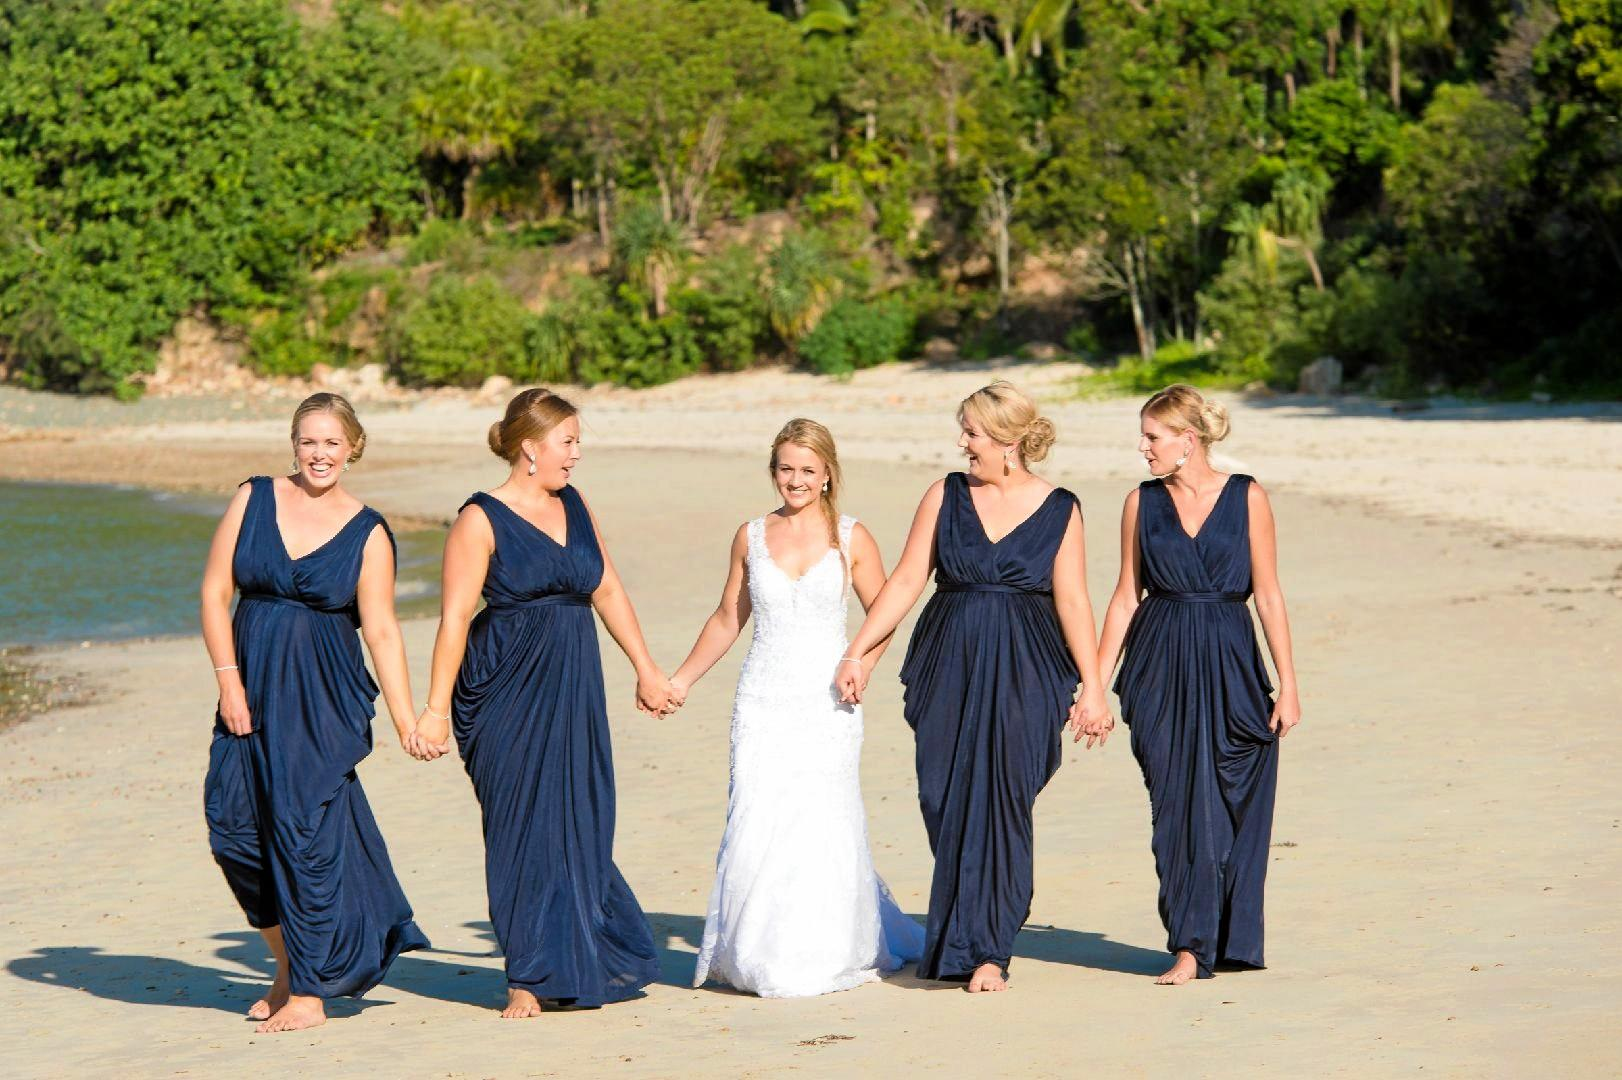 Melissa's bridal party donned deep navy dresses for the special day.